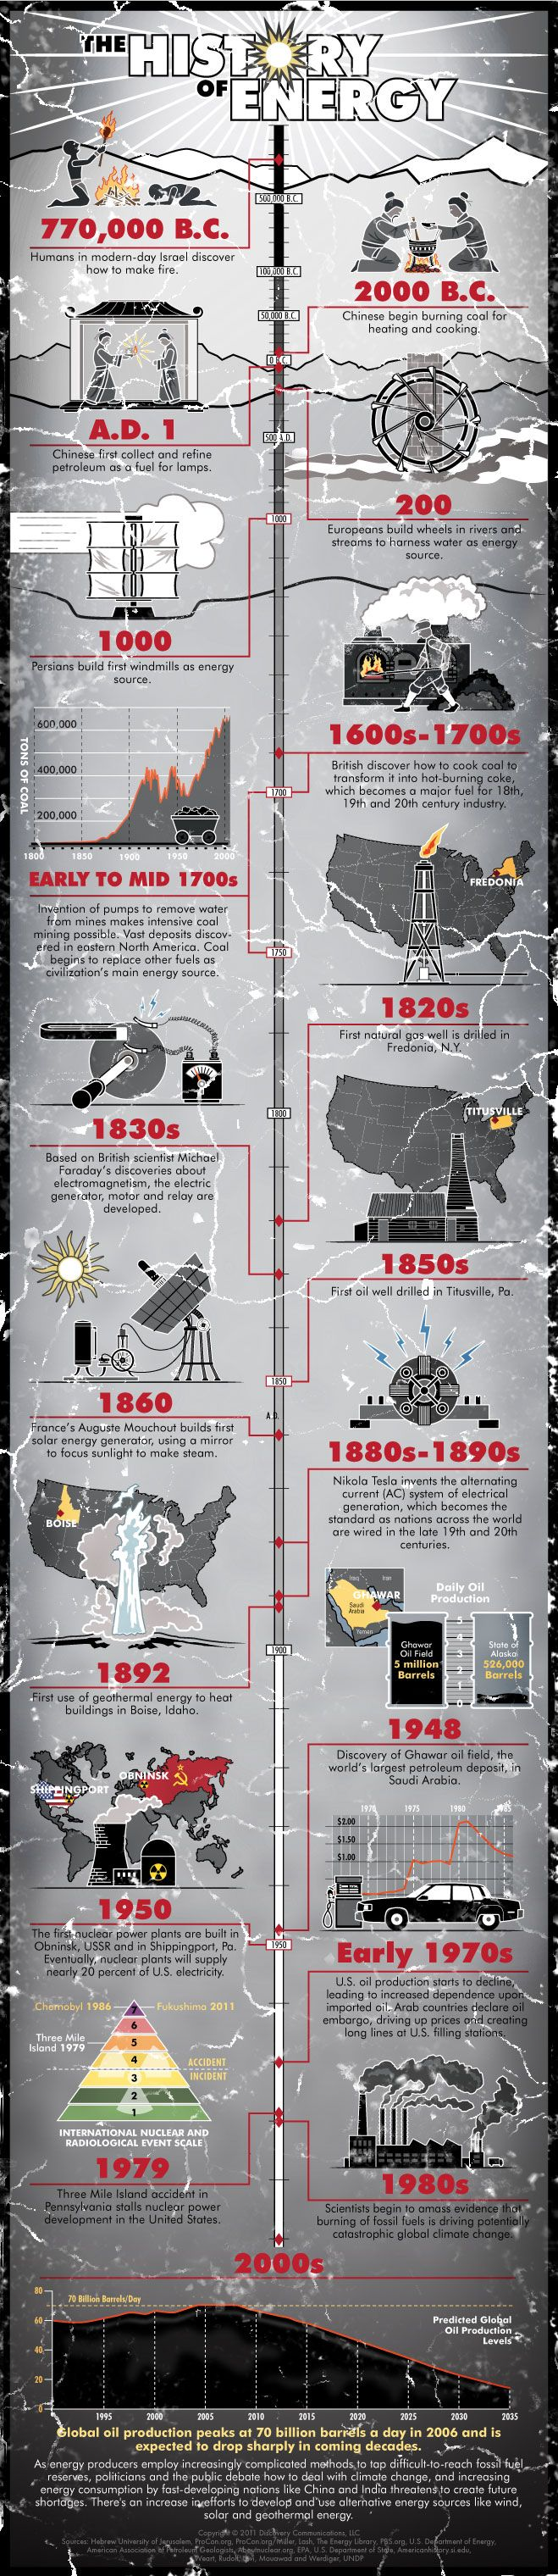 "HowStuffWorks ""An Illustrated History of Energy"""